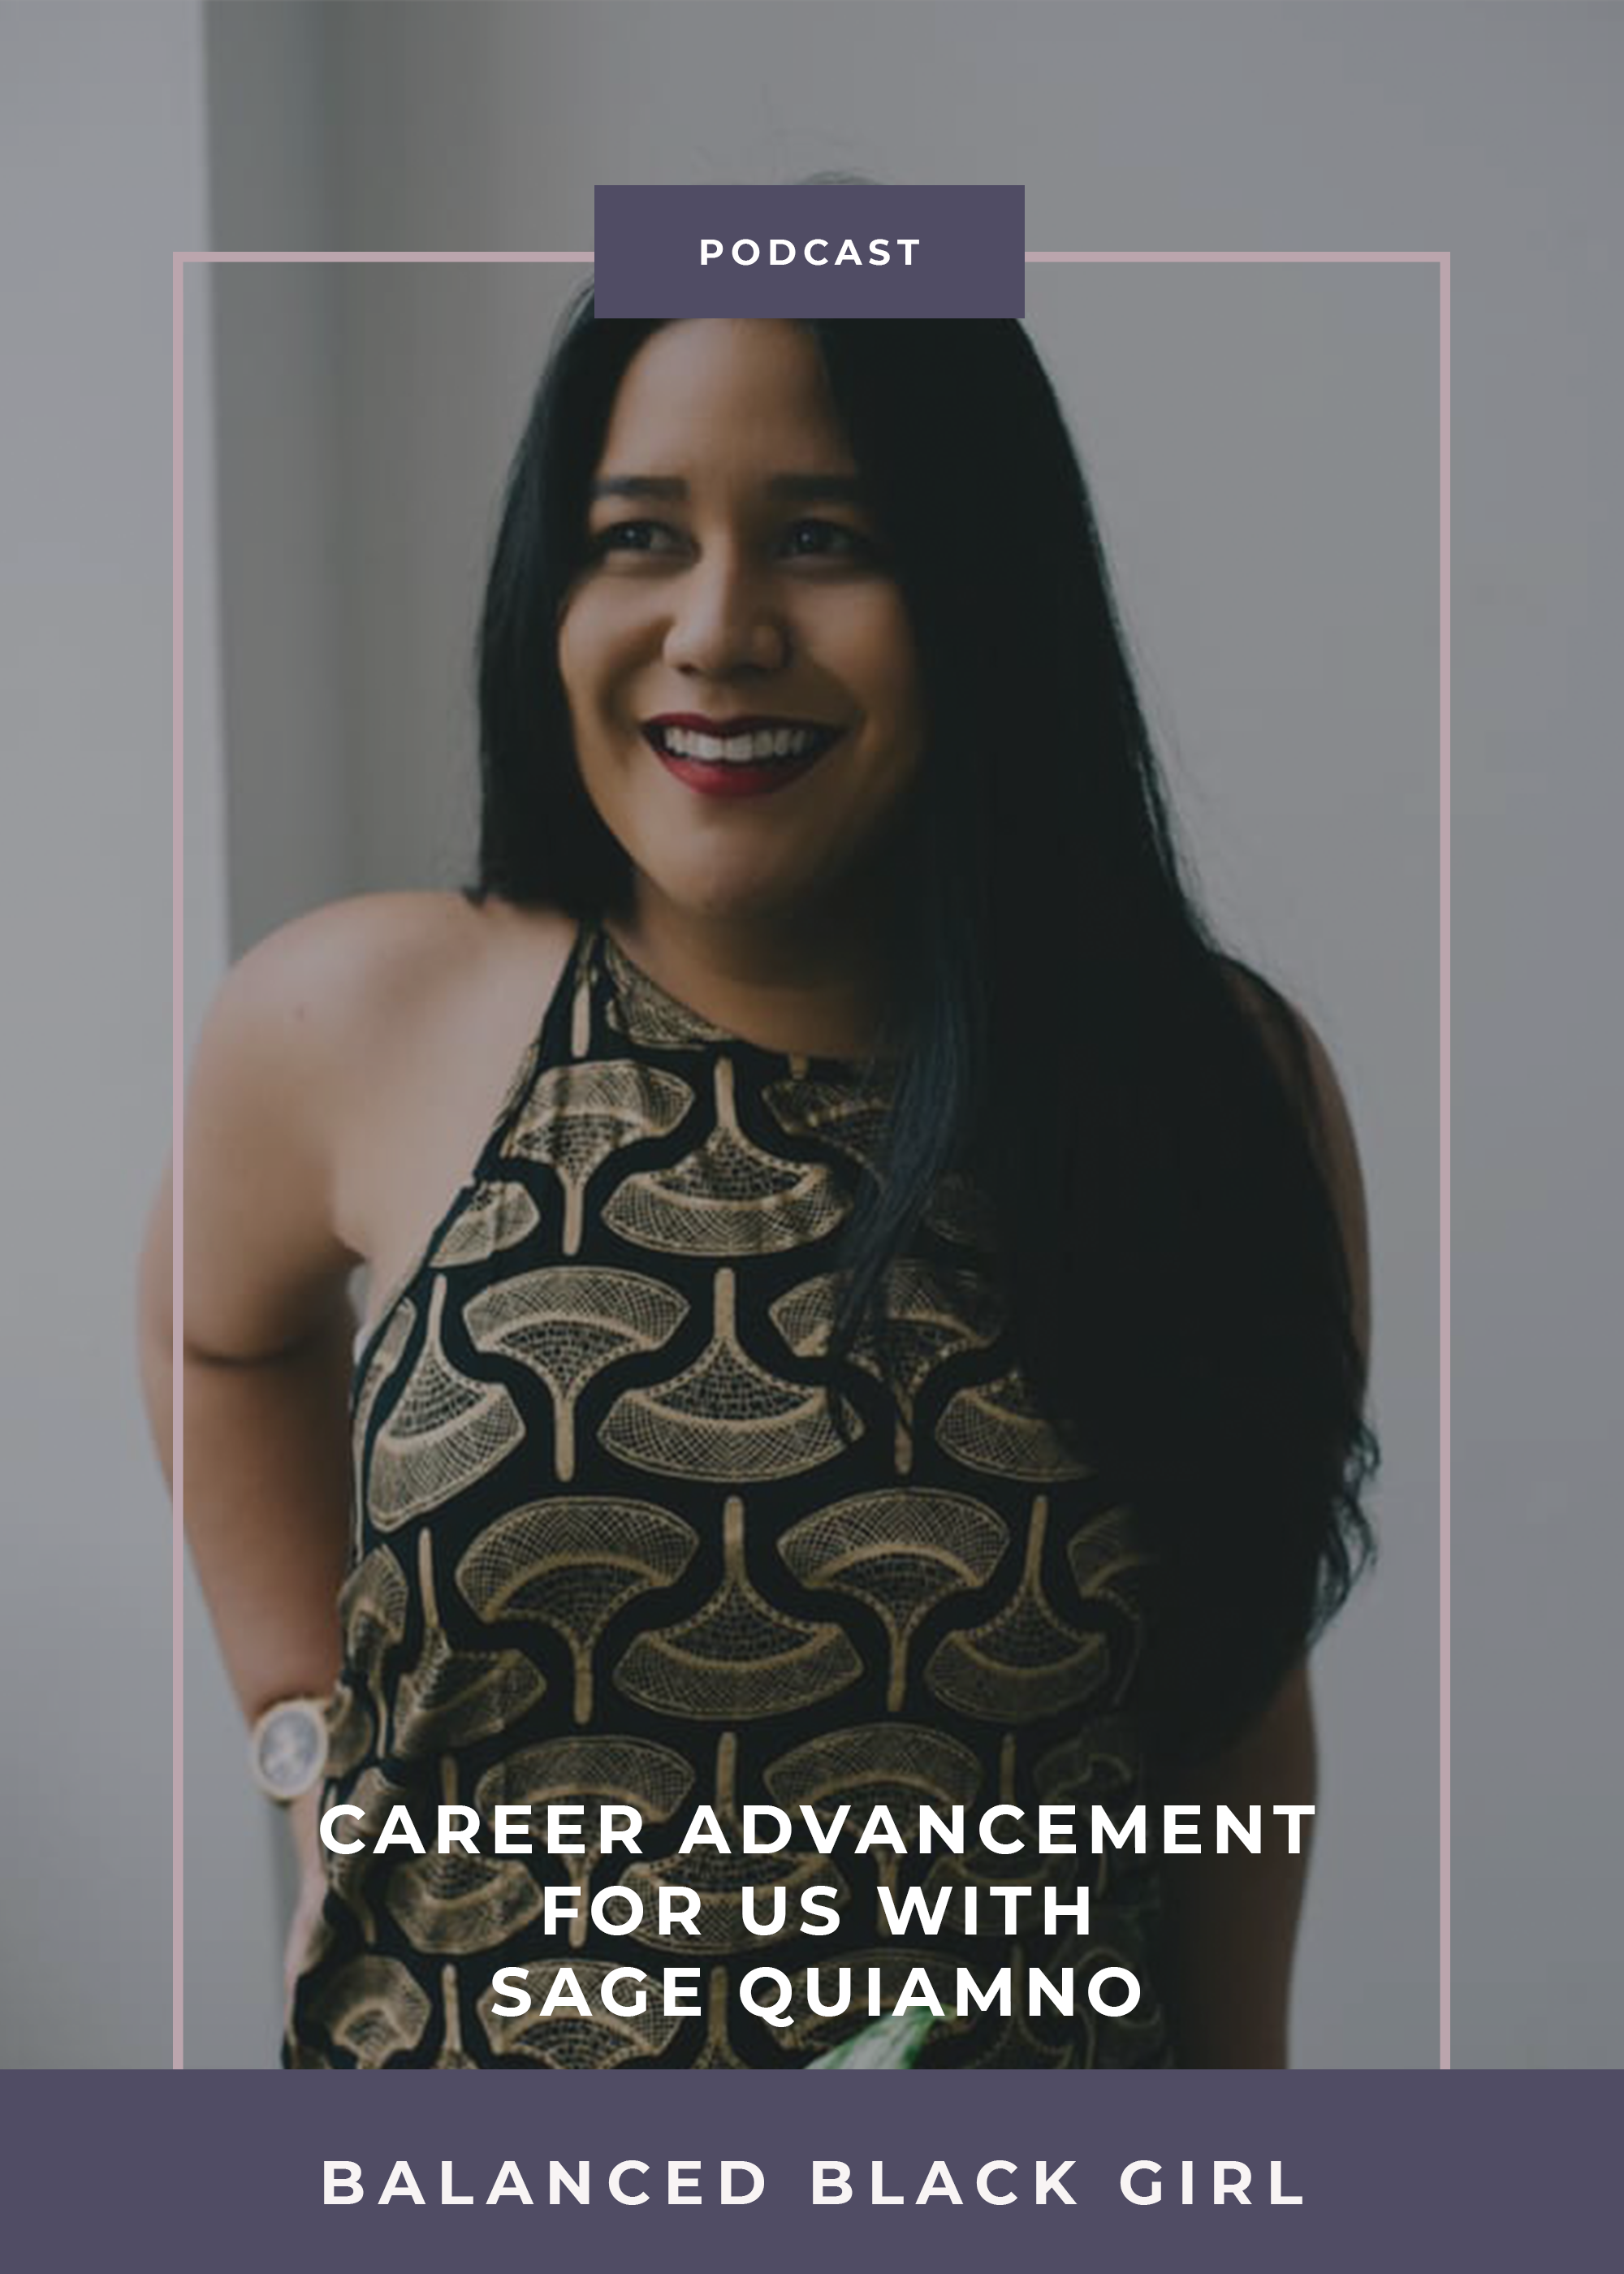 Today, we're talking to Sage Ke'alohilani Quiamno, the co-founder of Future for Us, a company dedicated to accelerating the advancement of women of color through community, culture and career development.